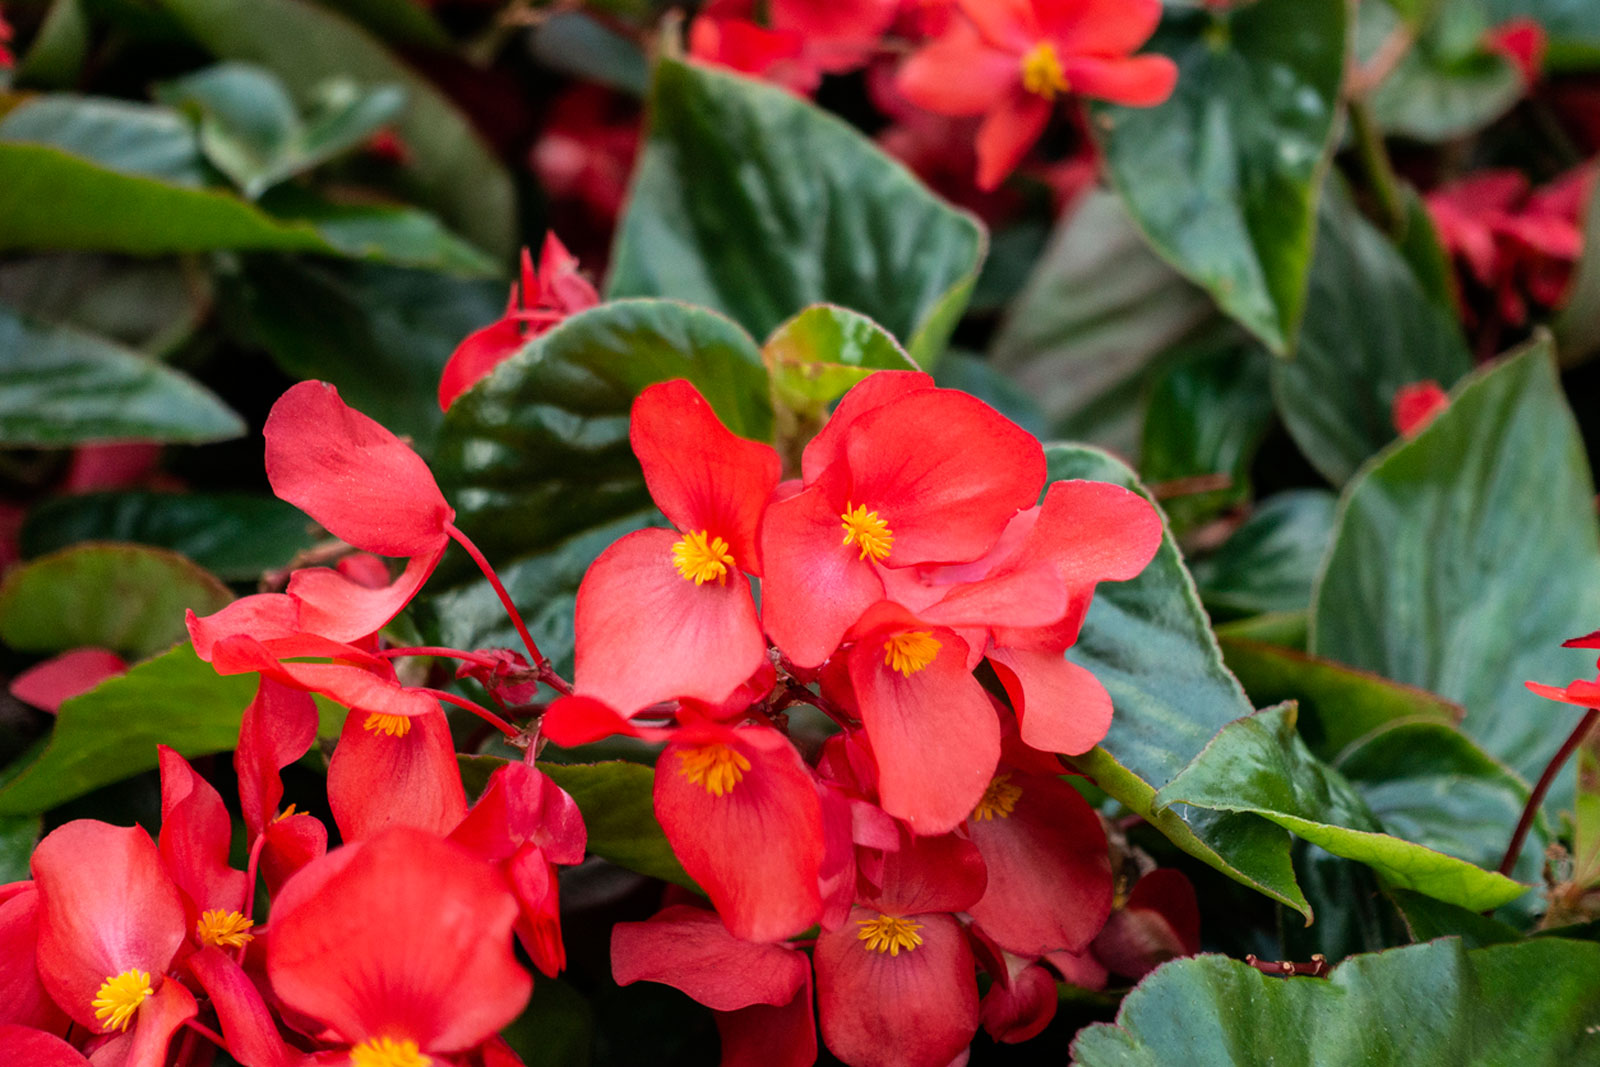 Growing Annual Begonia Plants - Information On How To Grow ...